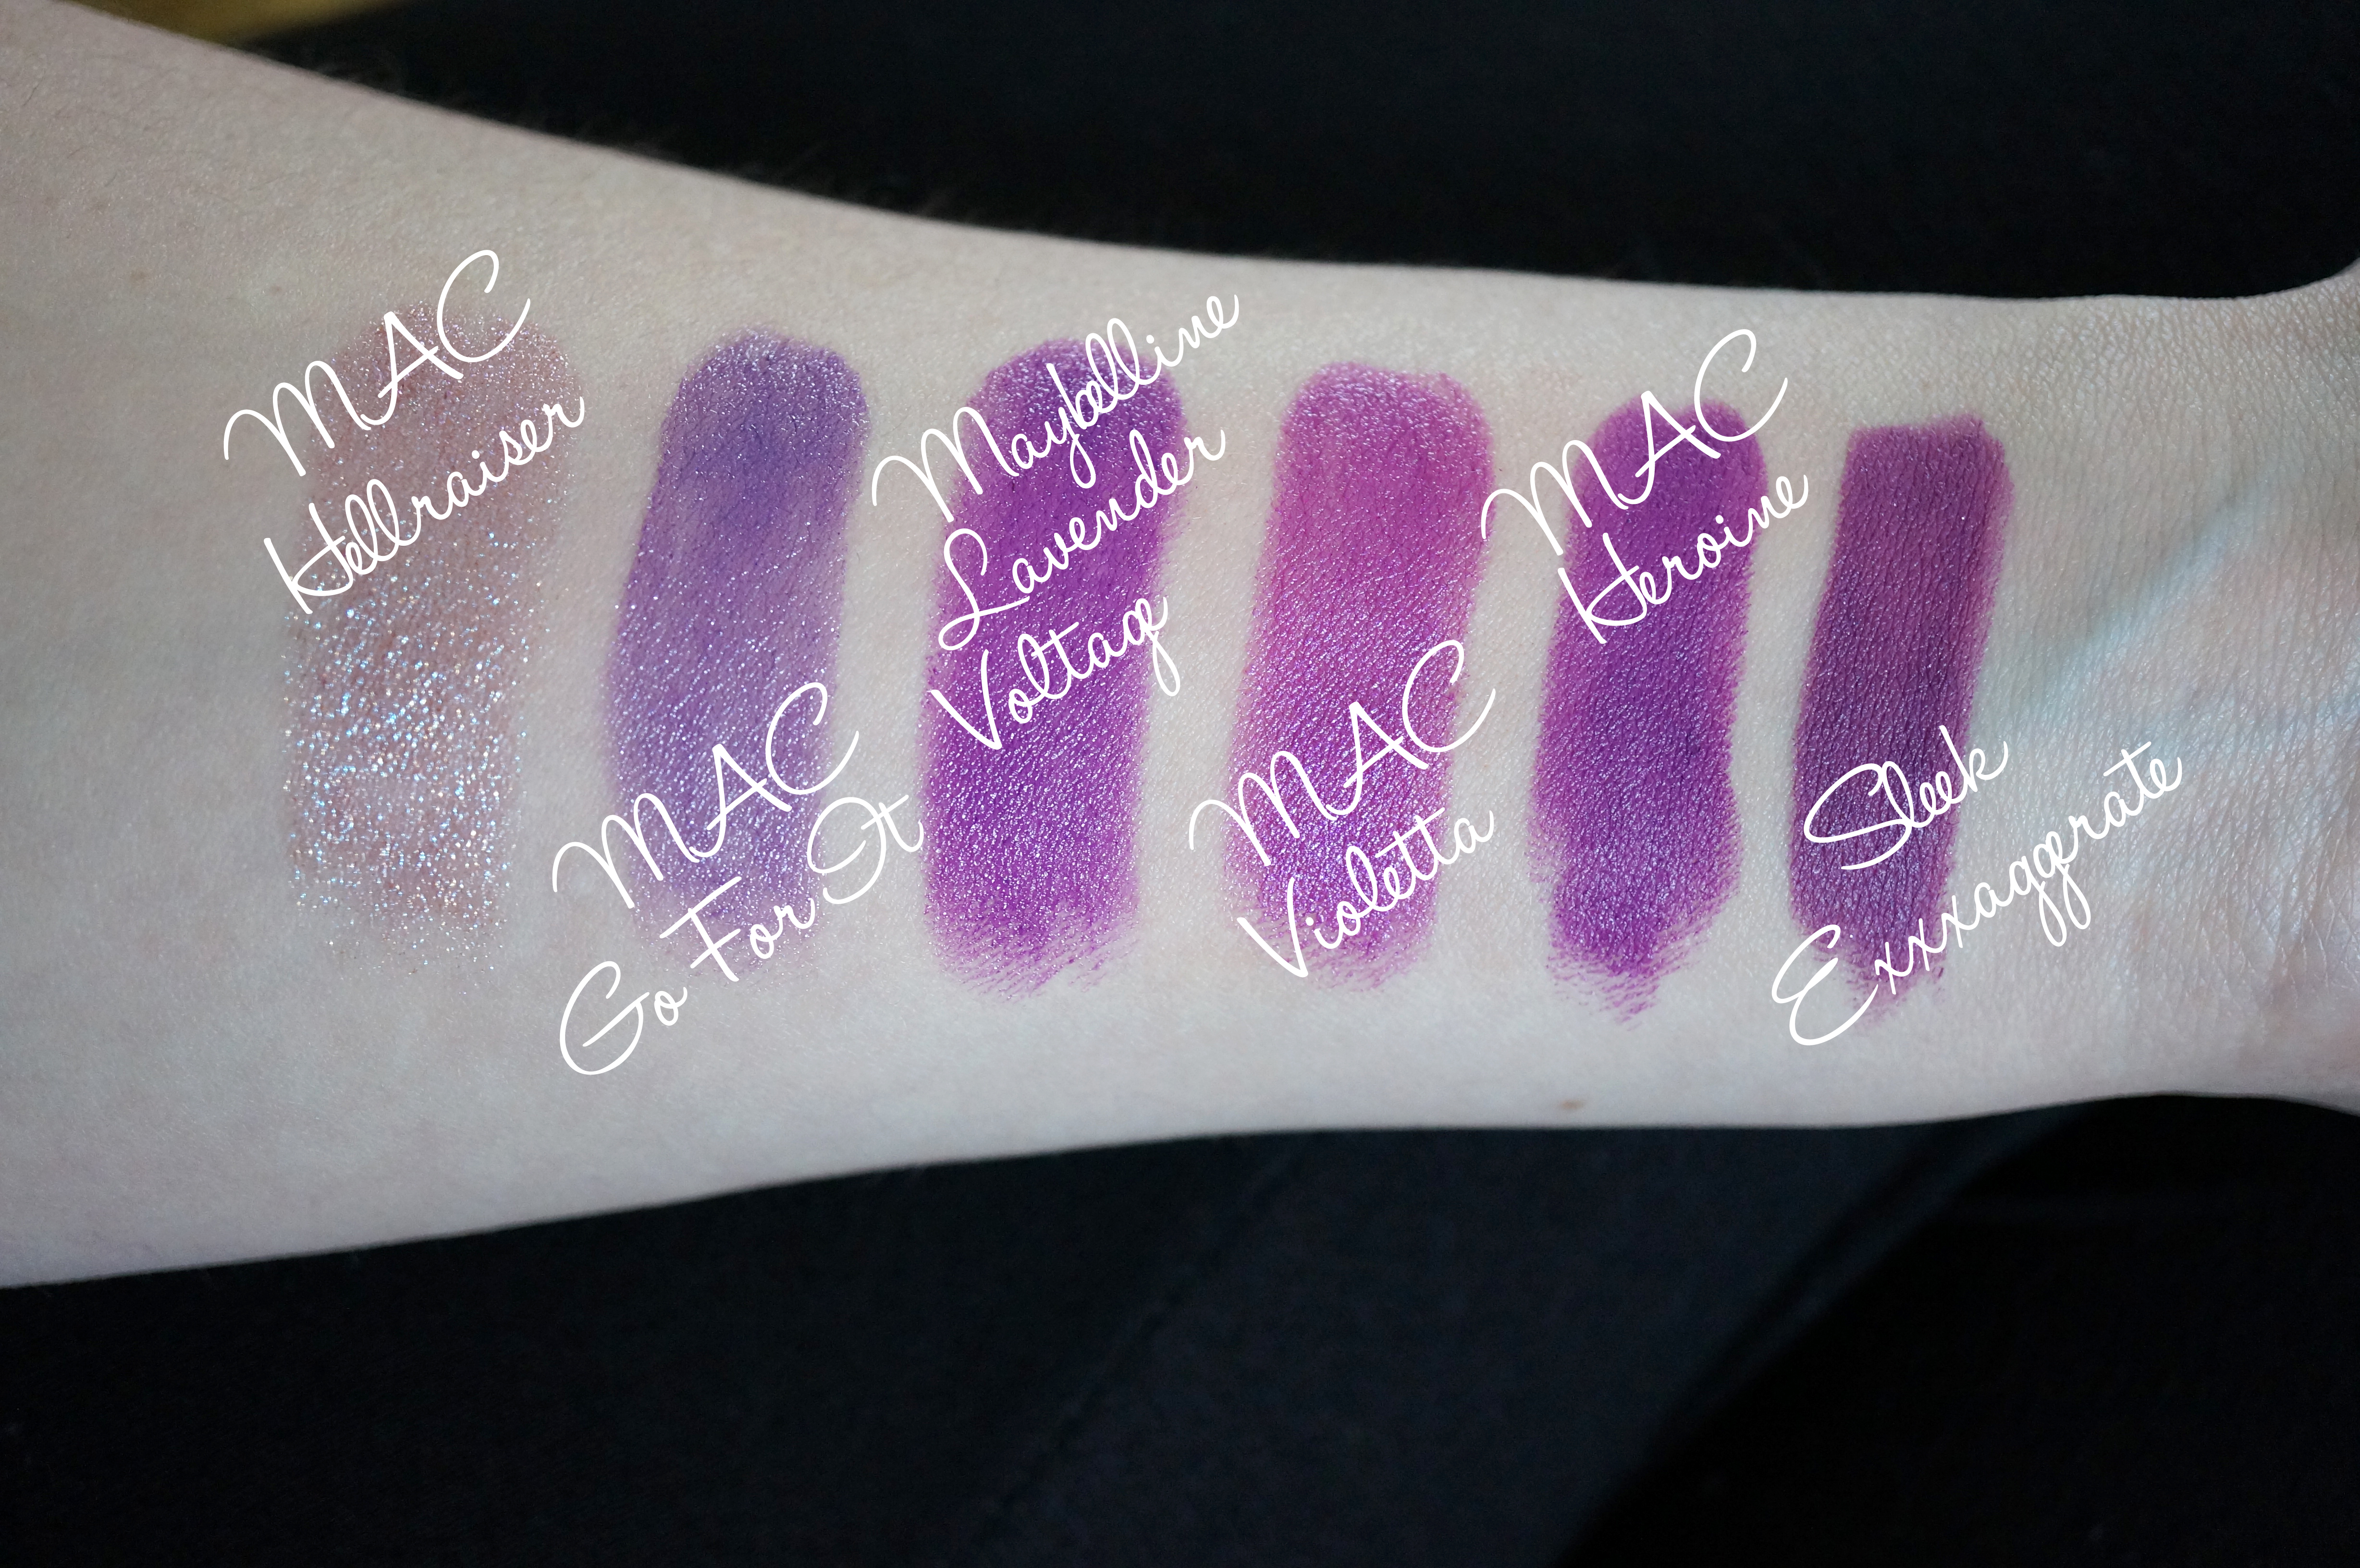 best purple lipstick Archives - Thou Shalt Not Covet...